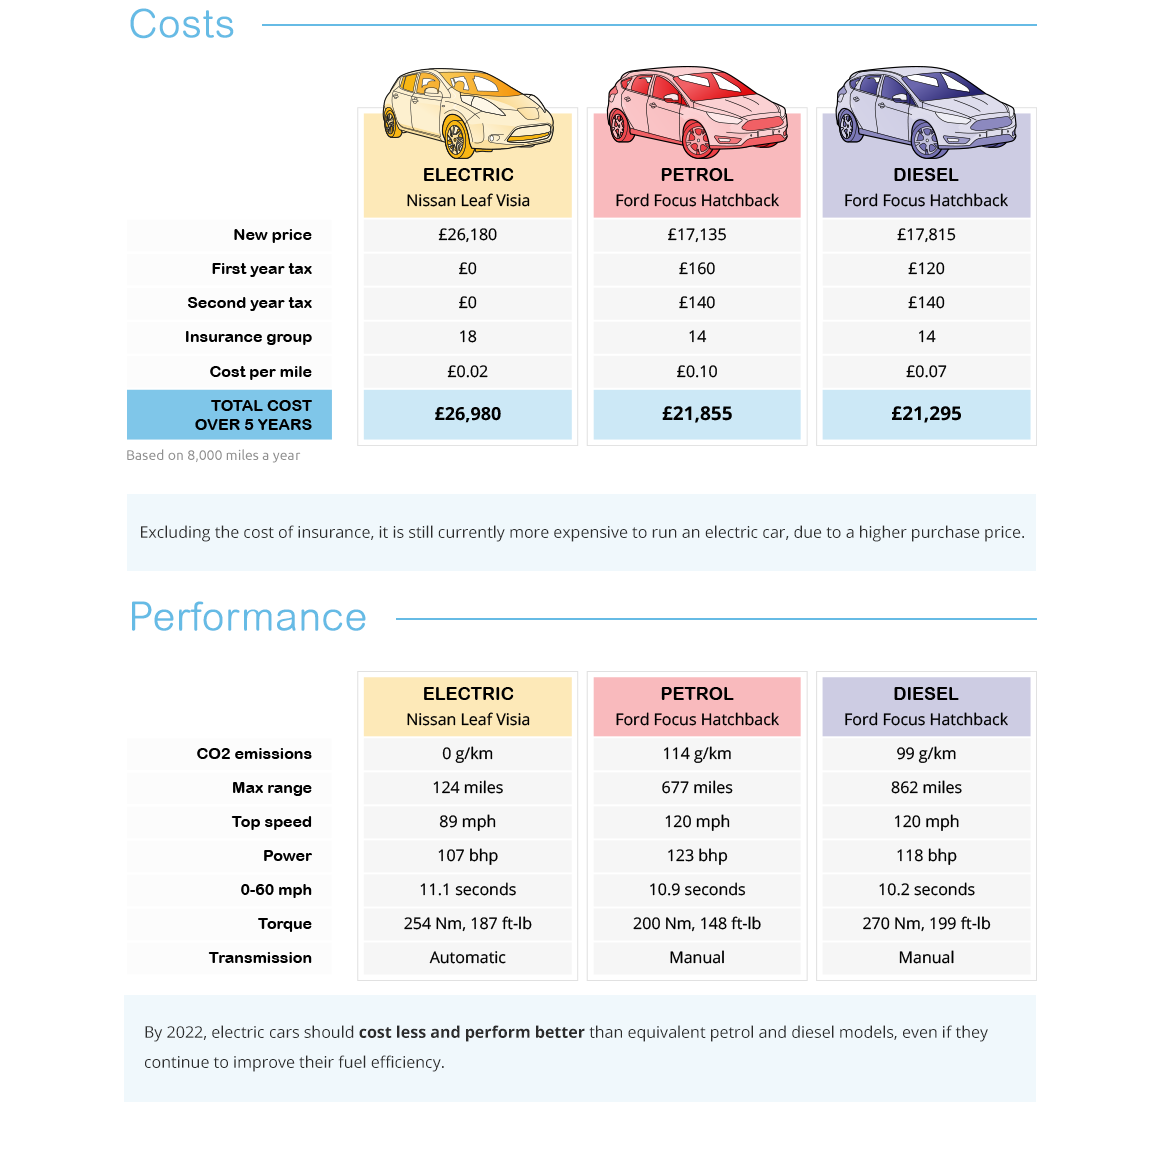 Electric car cost and performance comparison